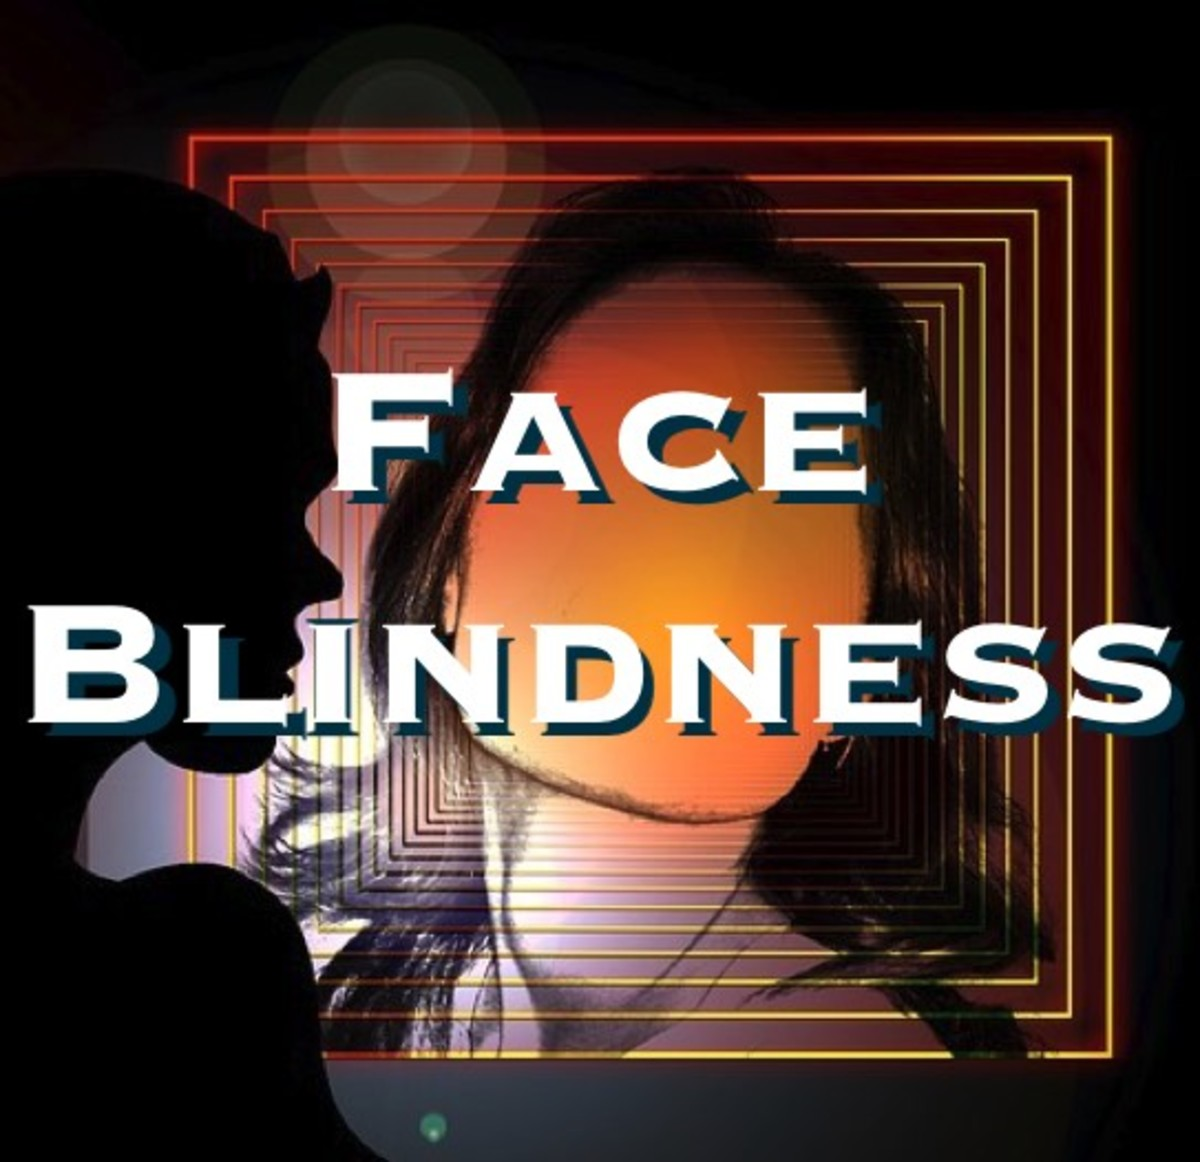 If You Can't Recognize People You Might Have Face Blindness: Prosopagnosia